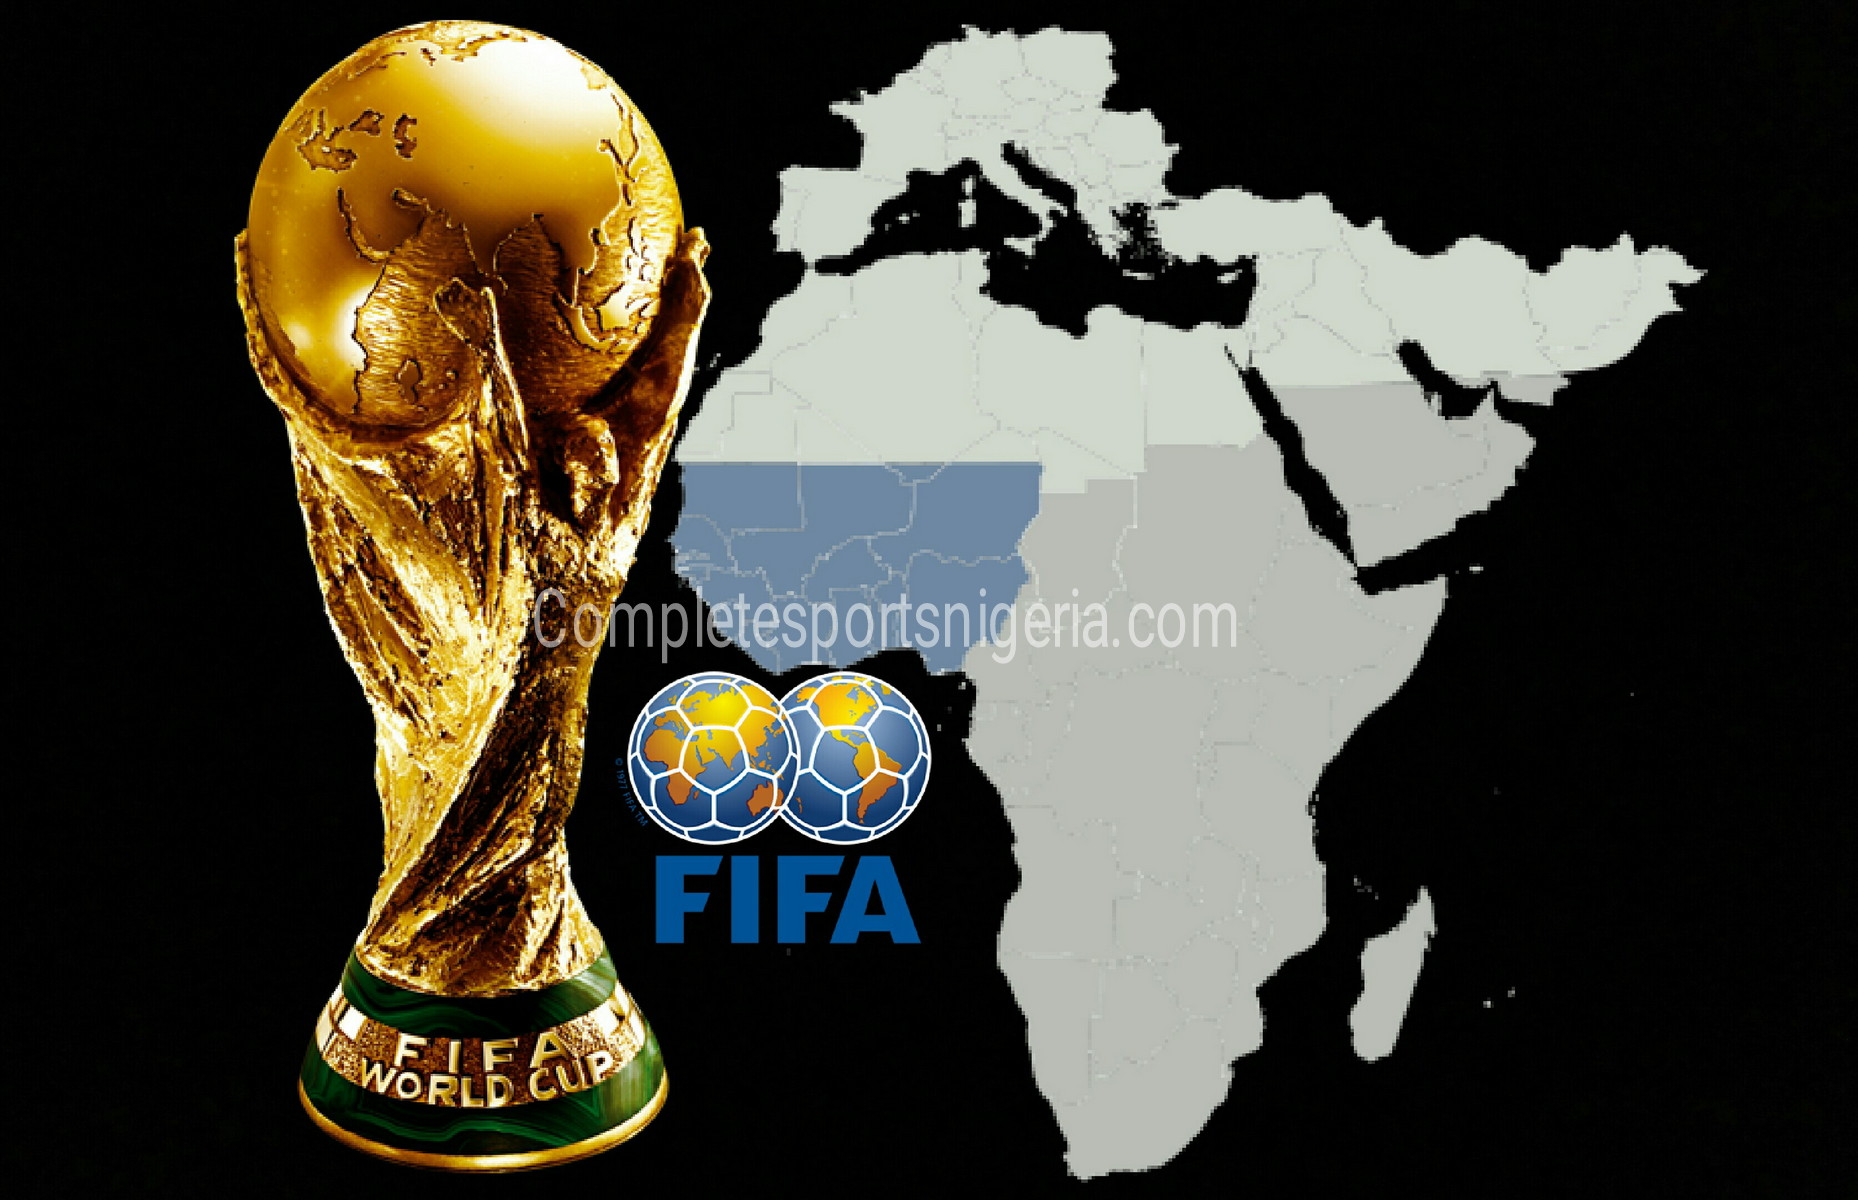 Odegbami: 2030 – West Africa's Turn To Host The World Cup!